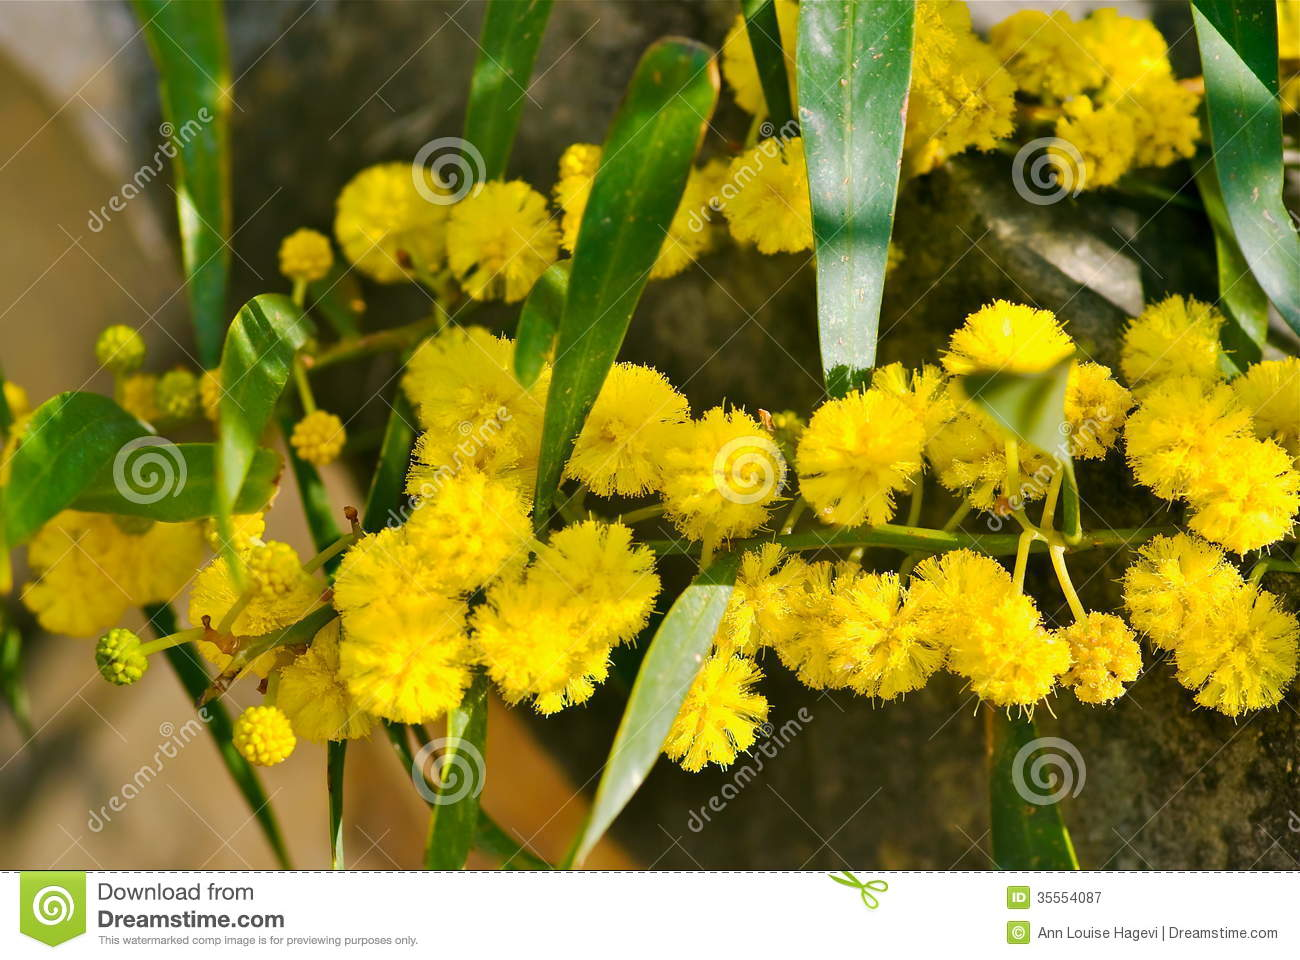 Mimosa tree stock image image of vegetation detail 35554087 - Trees that bloom yellow flowers ...